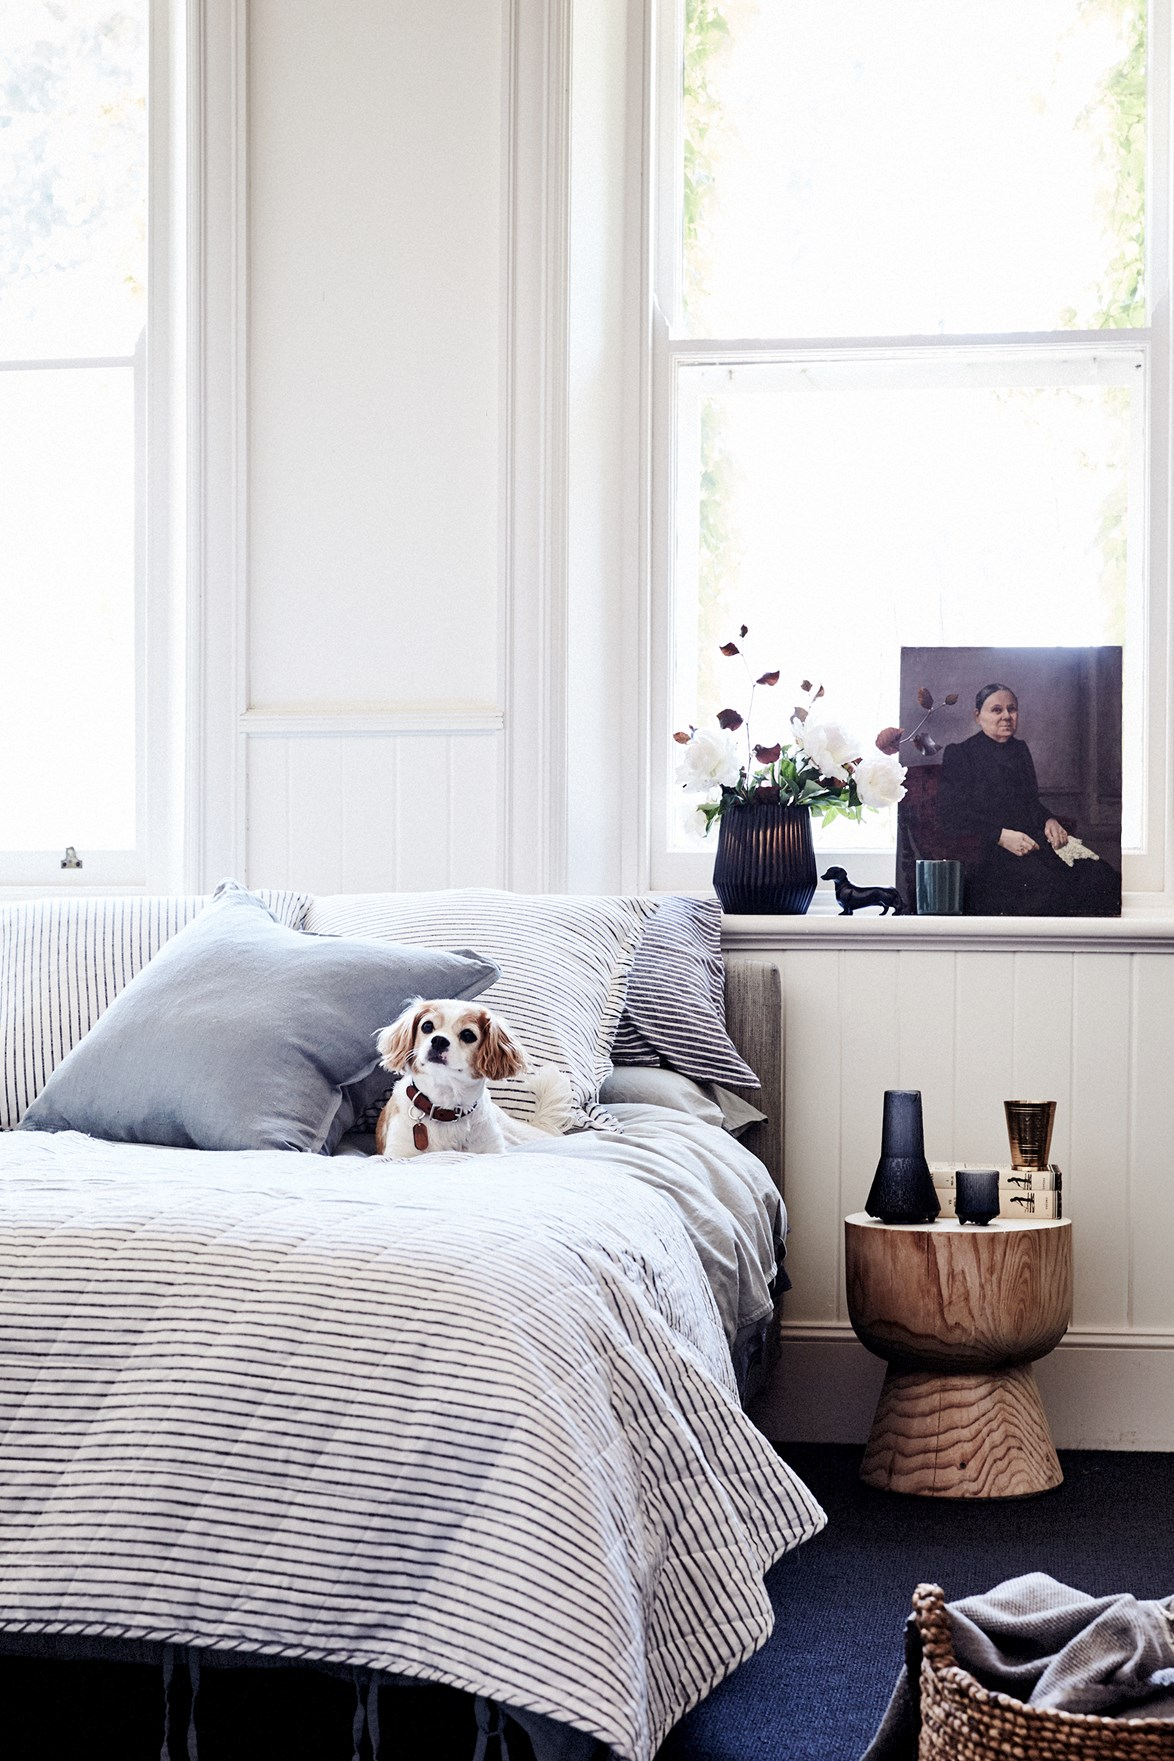 A place to pop your tea down, a puppy dog to cuddle and plump euro cushions to prop yourself up to read a book or the paper - this bedroom ticks all the boxes in terms of comfort and style.